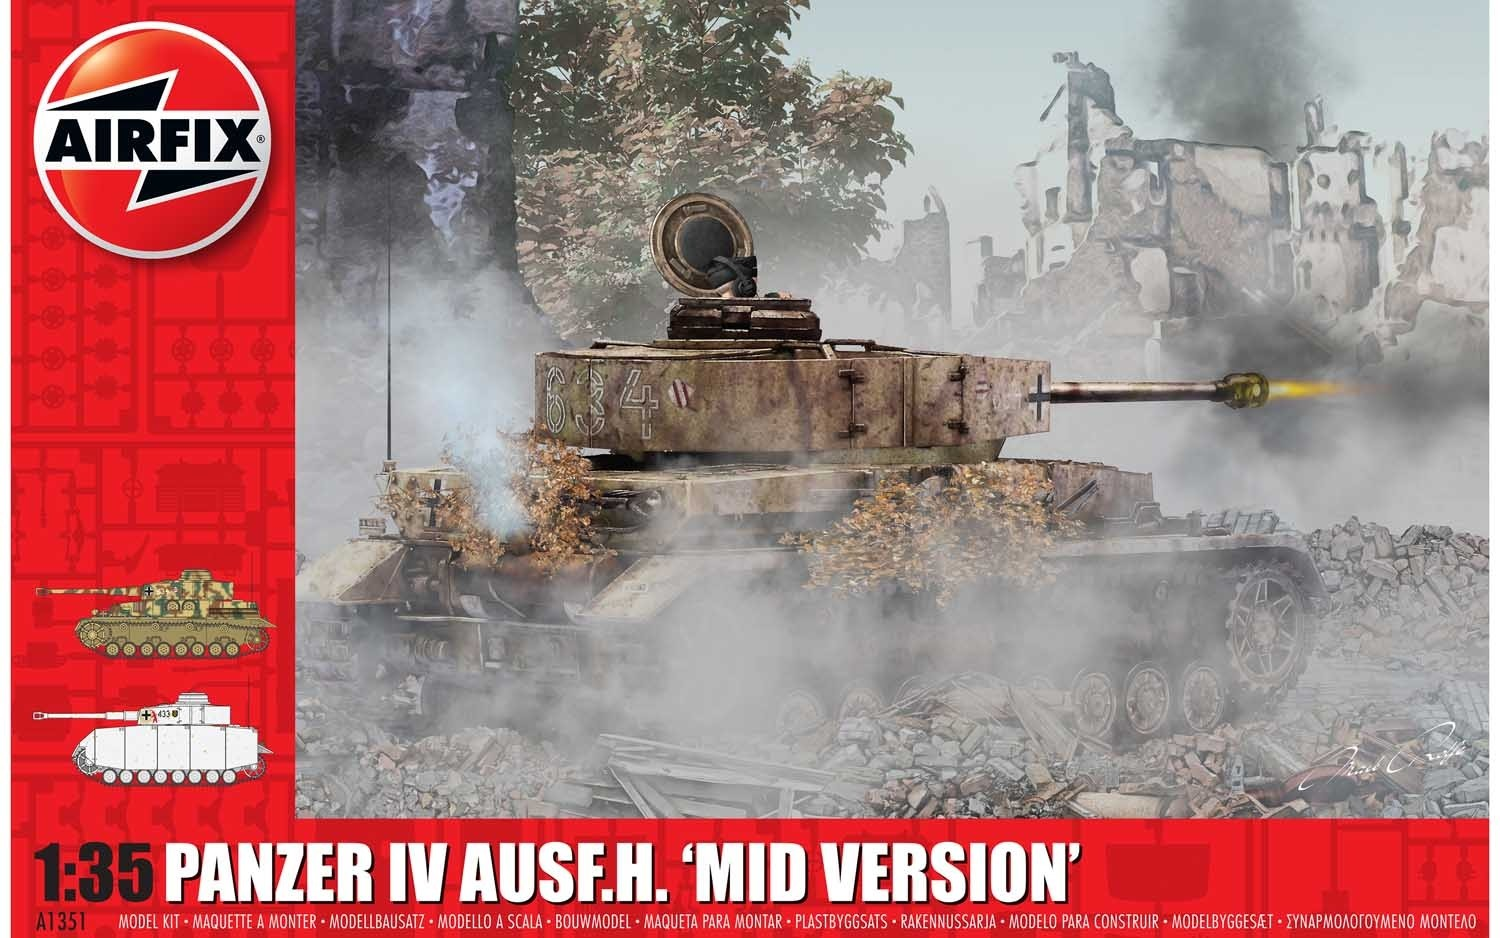 Panzer IV Ausf.H, Mid Version